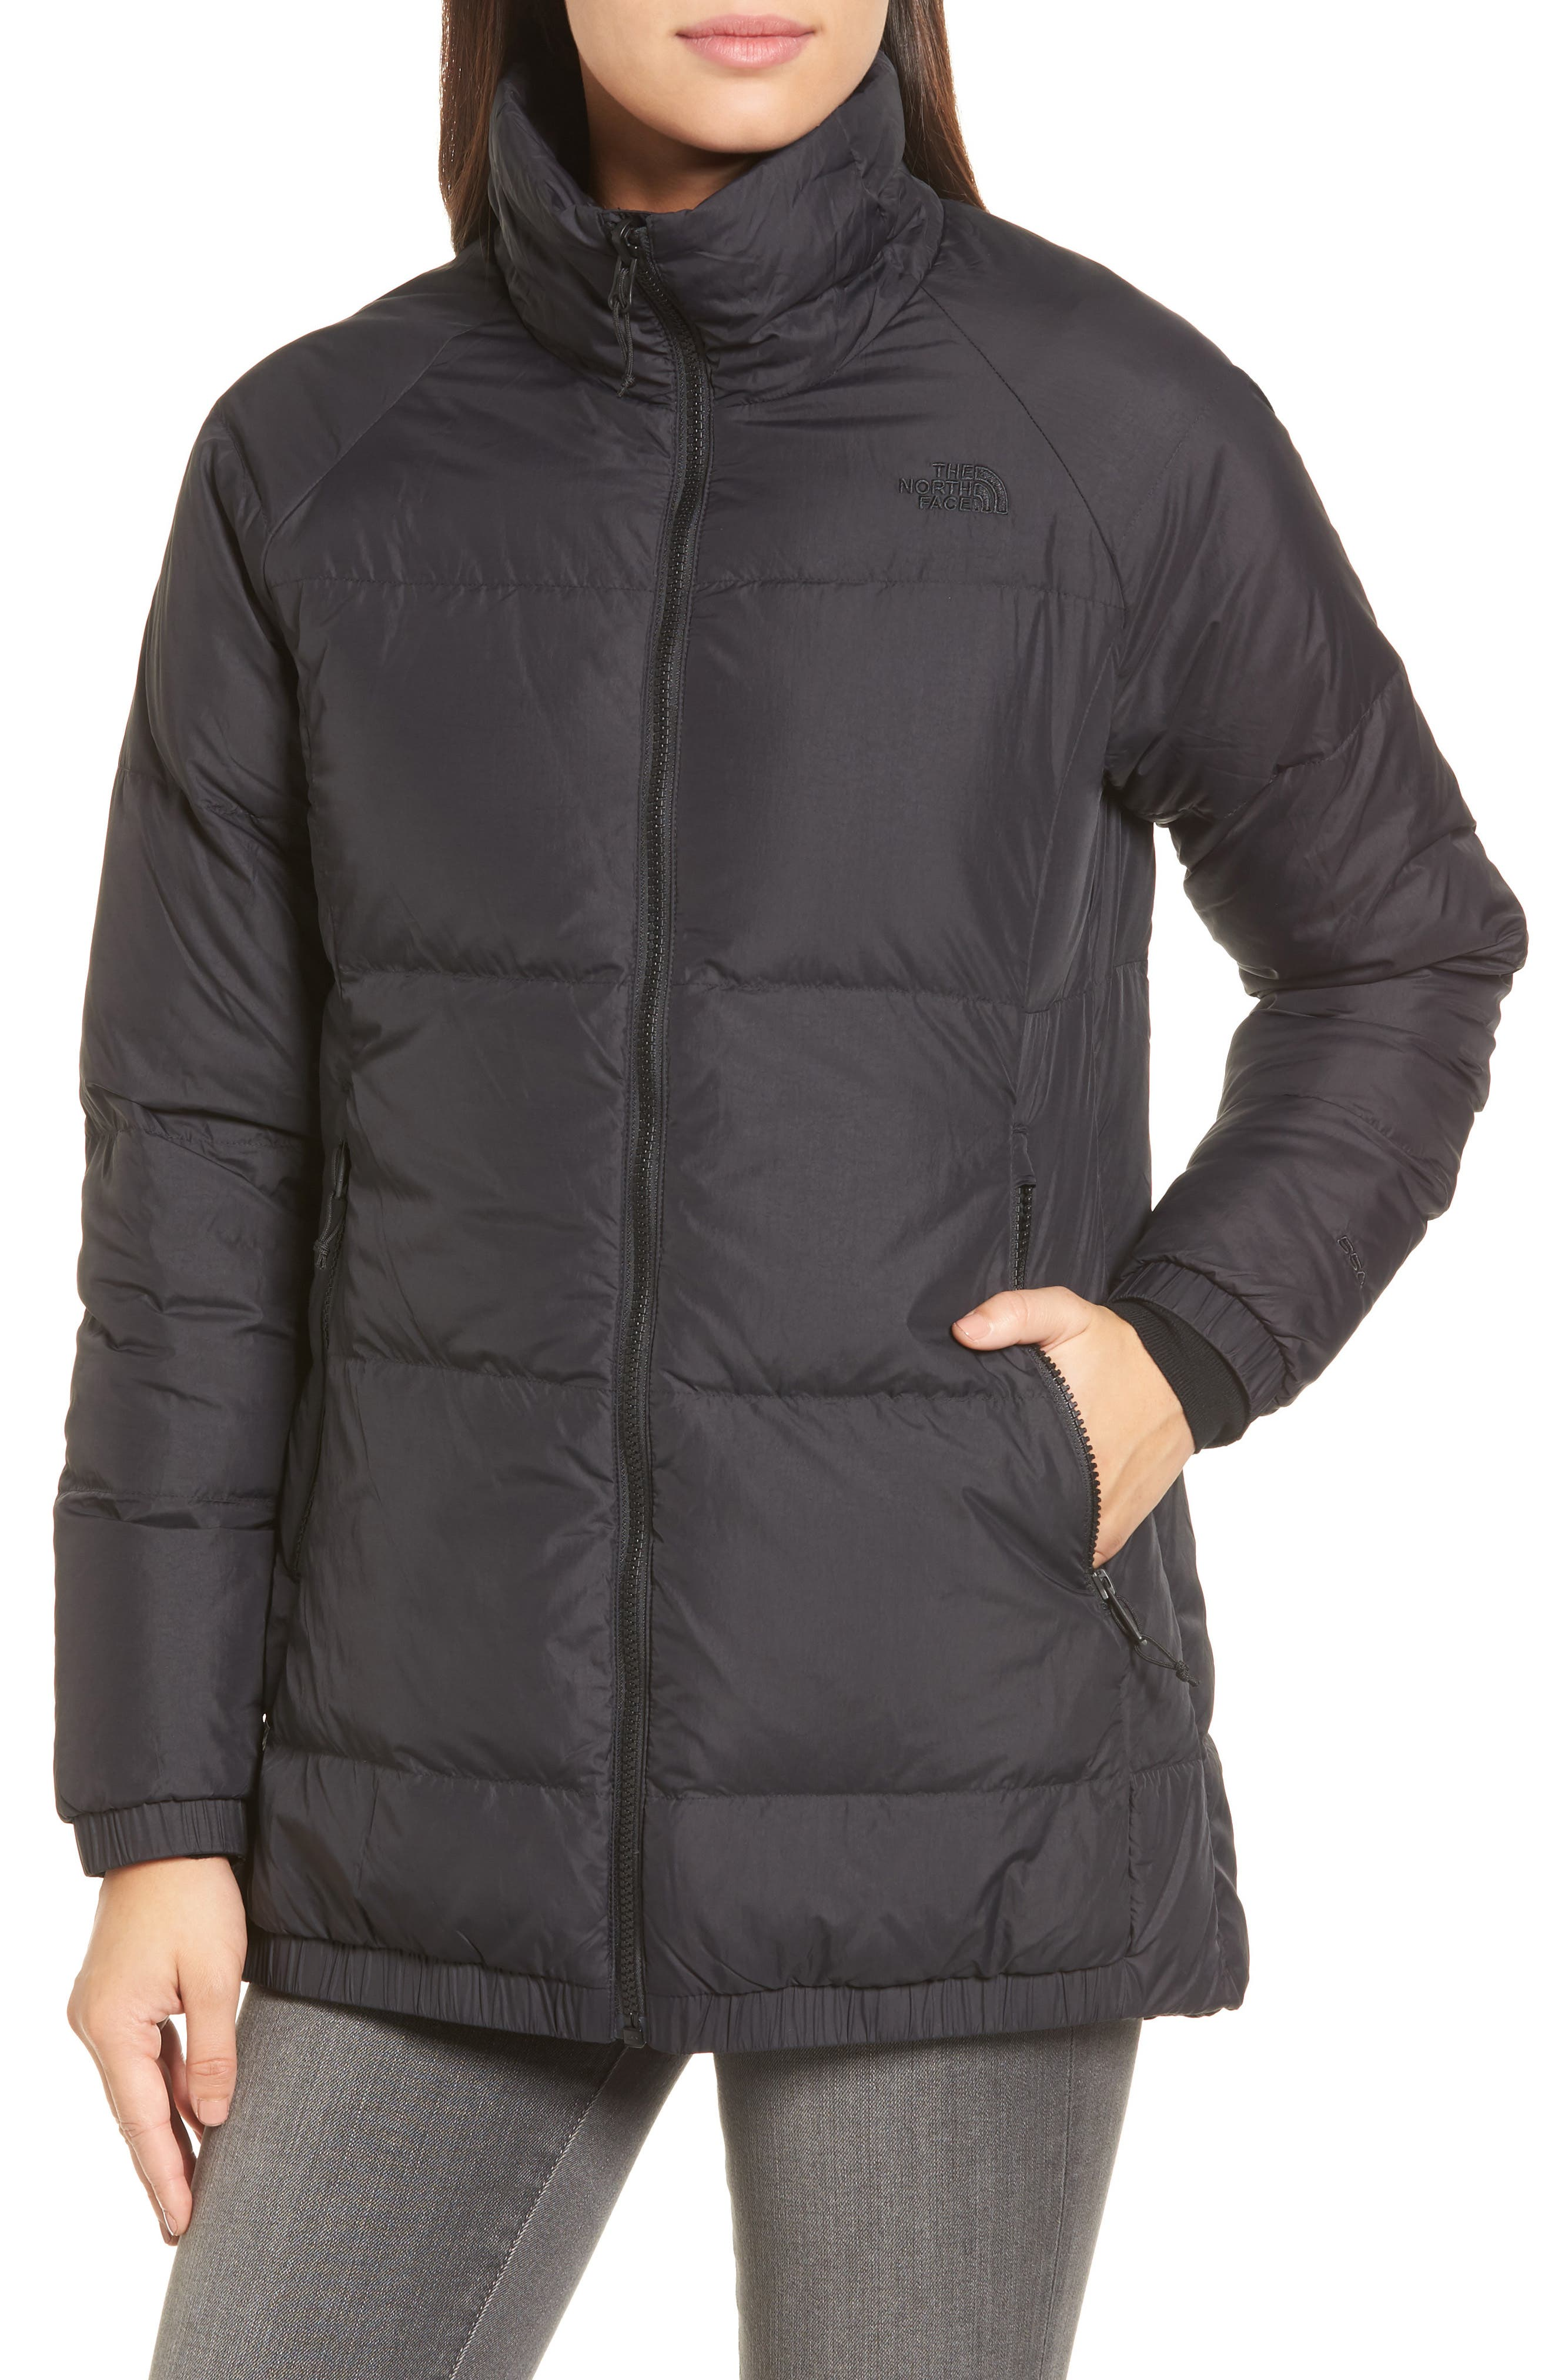 Outer Boroughs 3-in-1 TriClimate<sup>®</sup> Waterproof Jacket with Faux Fur Trim,                             Alternate thumbnail 4, color,                             301